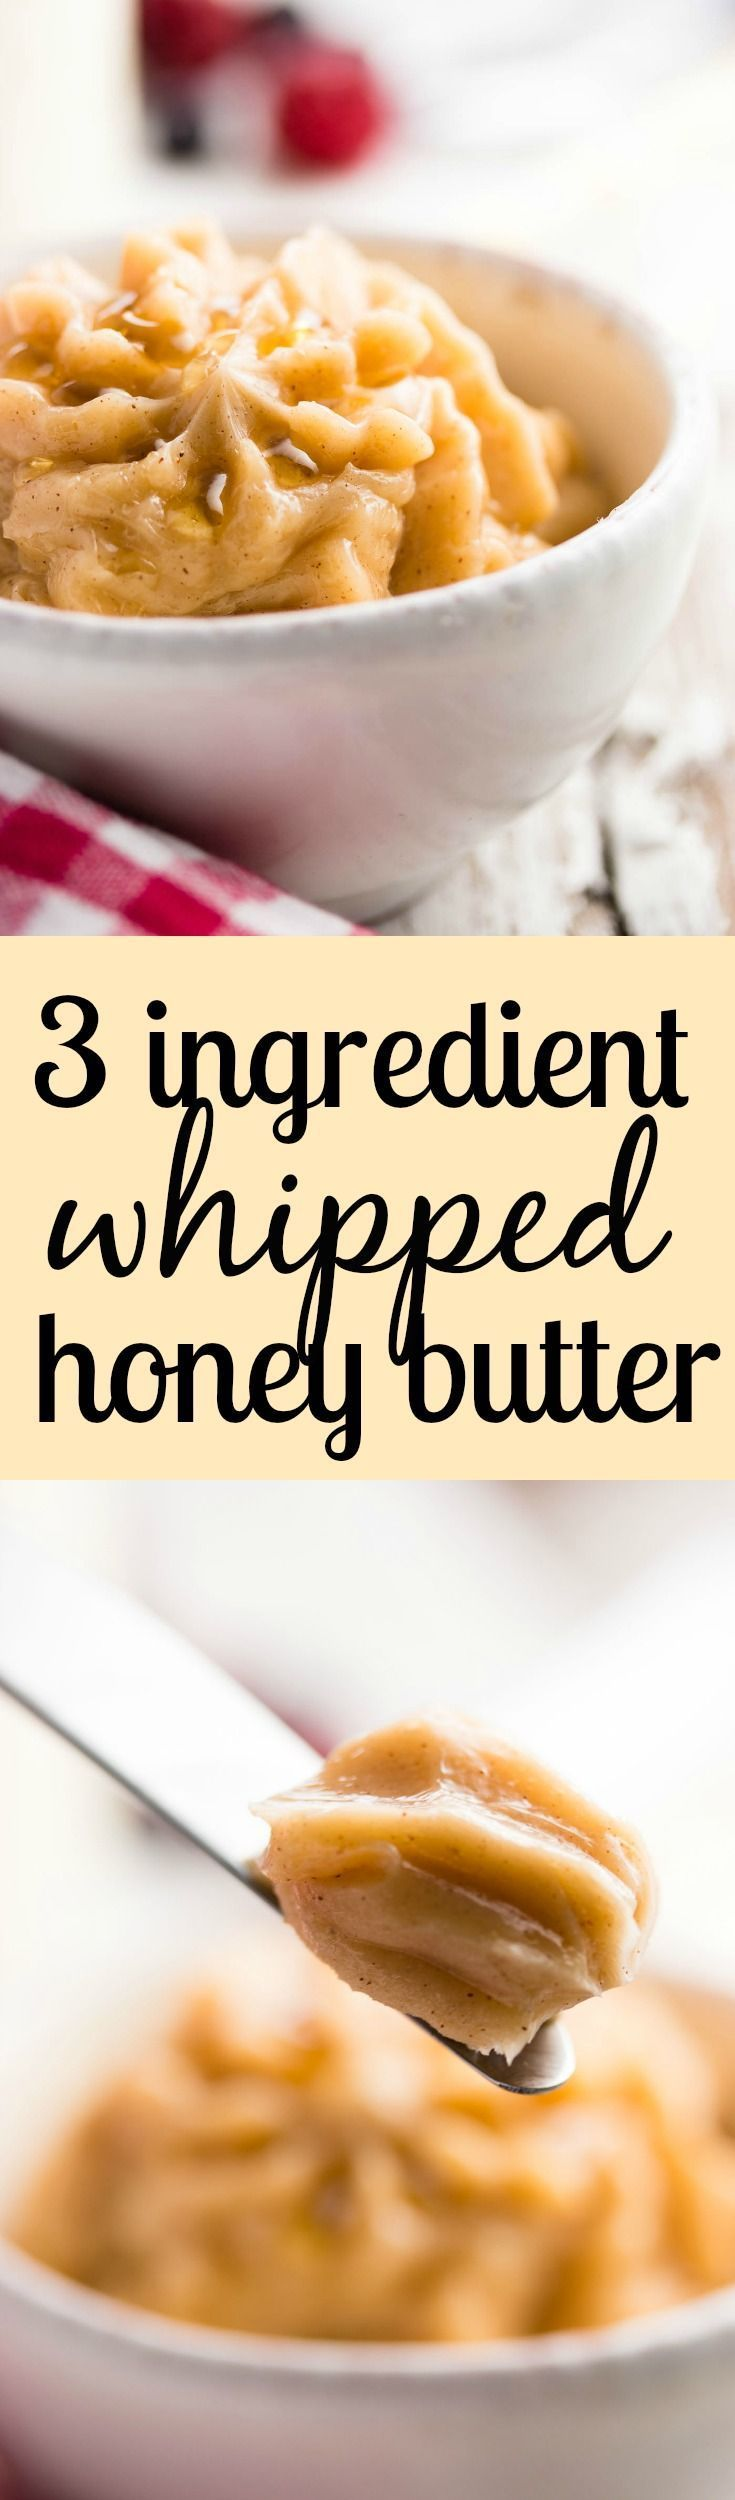 Ever wondered how to make homemade whipped honey butter? Its super easy and only needs three ingredients! My family loves this for weekend brunches! | savorynothings.com